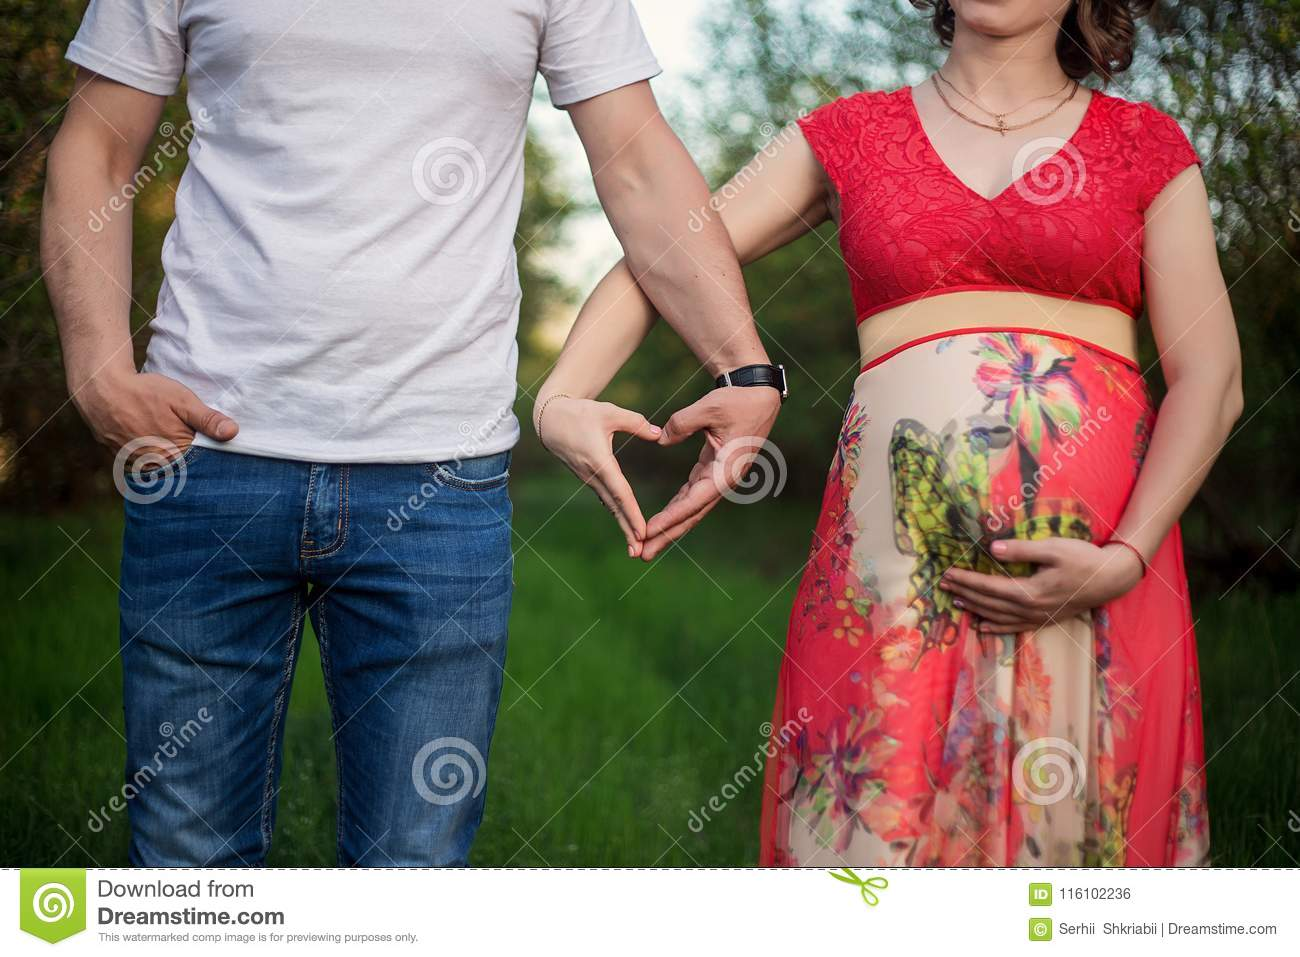 A happy pregnant couple made from hands made of a heart